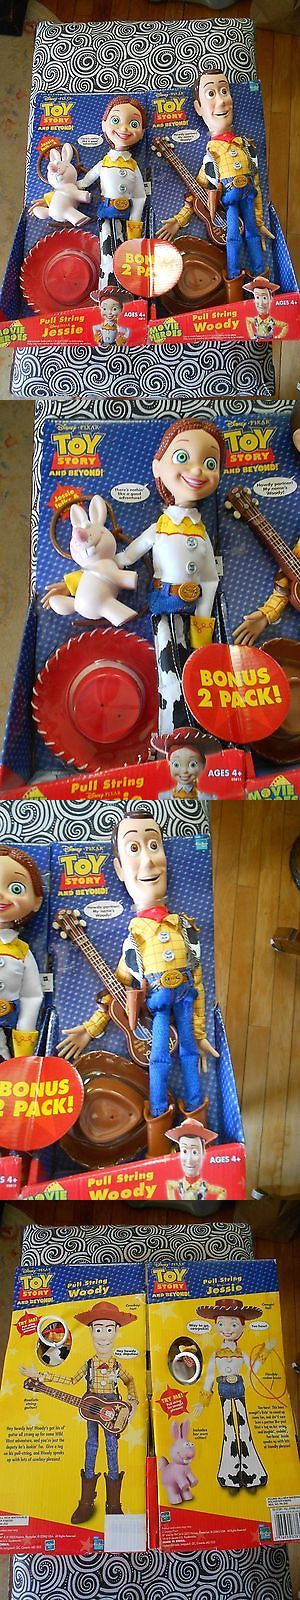 Toy Story 19223: Disney Pixar Toy Story And Beyond Pull String Woody And Jessie Dolls 2 Pack Nib -> BUY IT NOW ONLY: $79 on eBay!